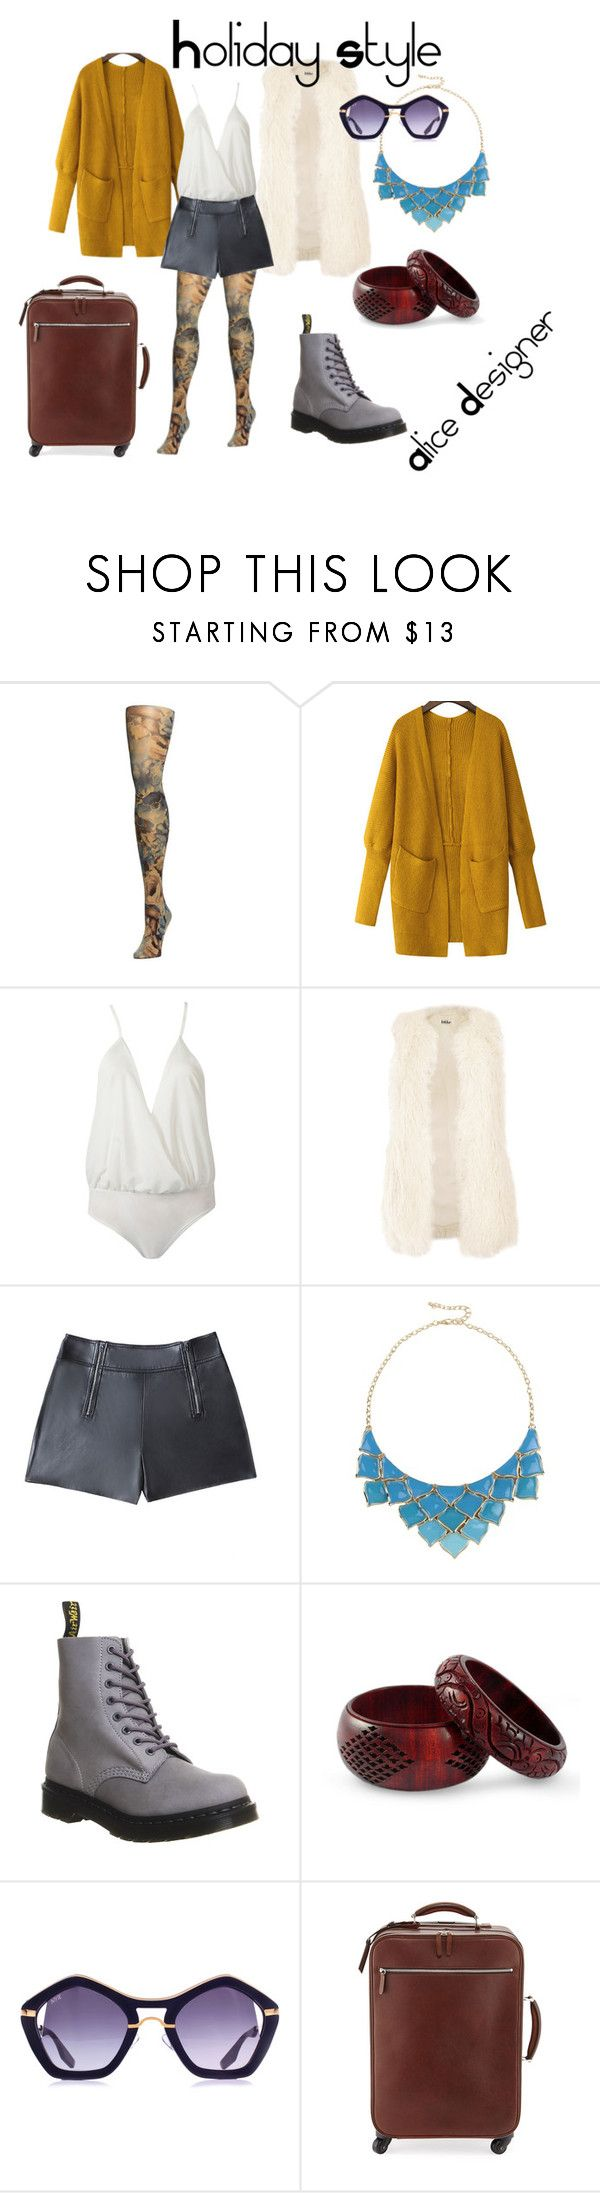 """Holyday Style NYC"" by alicedesigner on Polyvore featuring moda, Bebe, George J. Love, Dr. Martens, NOVICA, Brunello Cucinelli e holidaystyle"